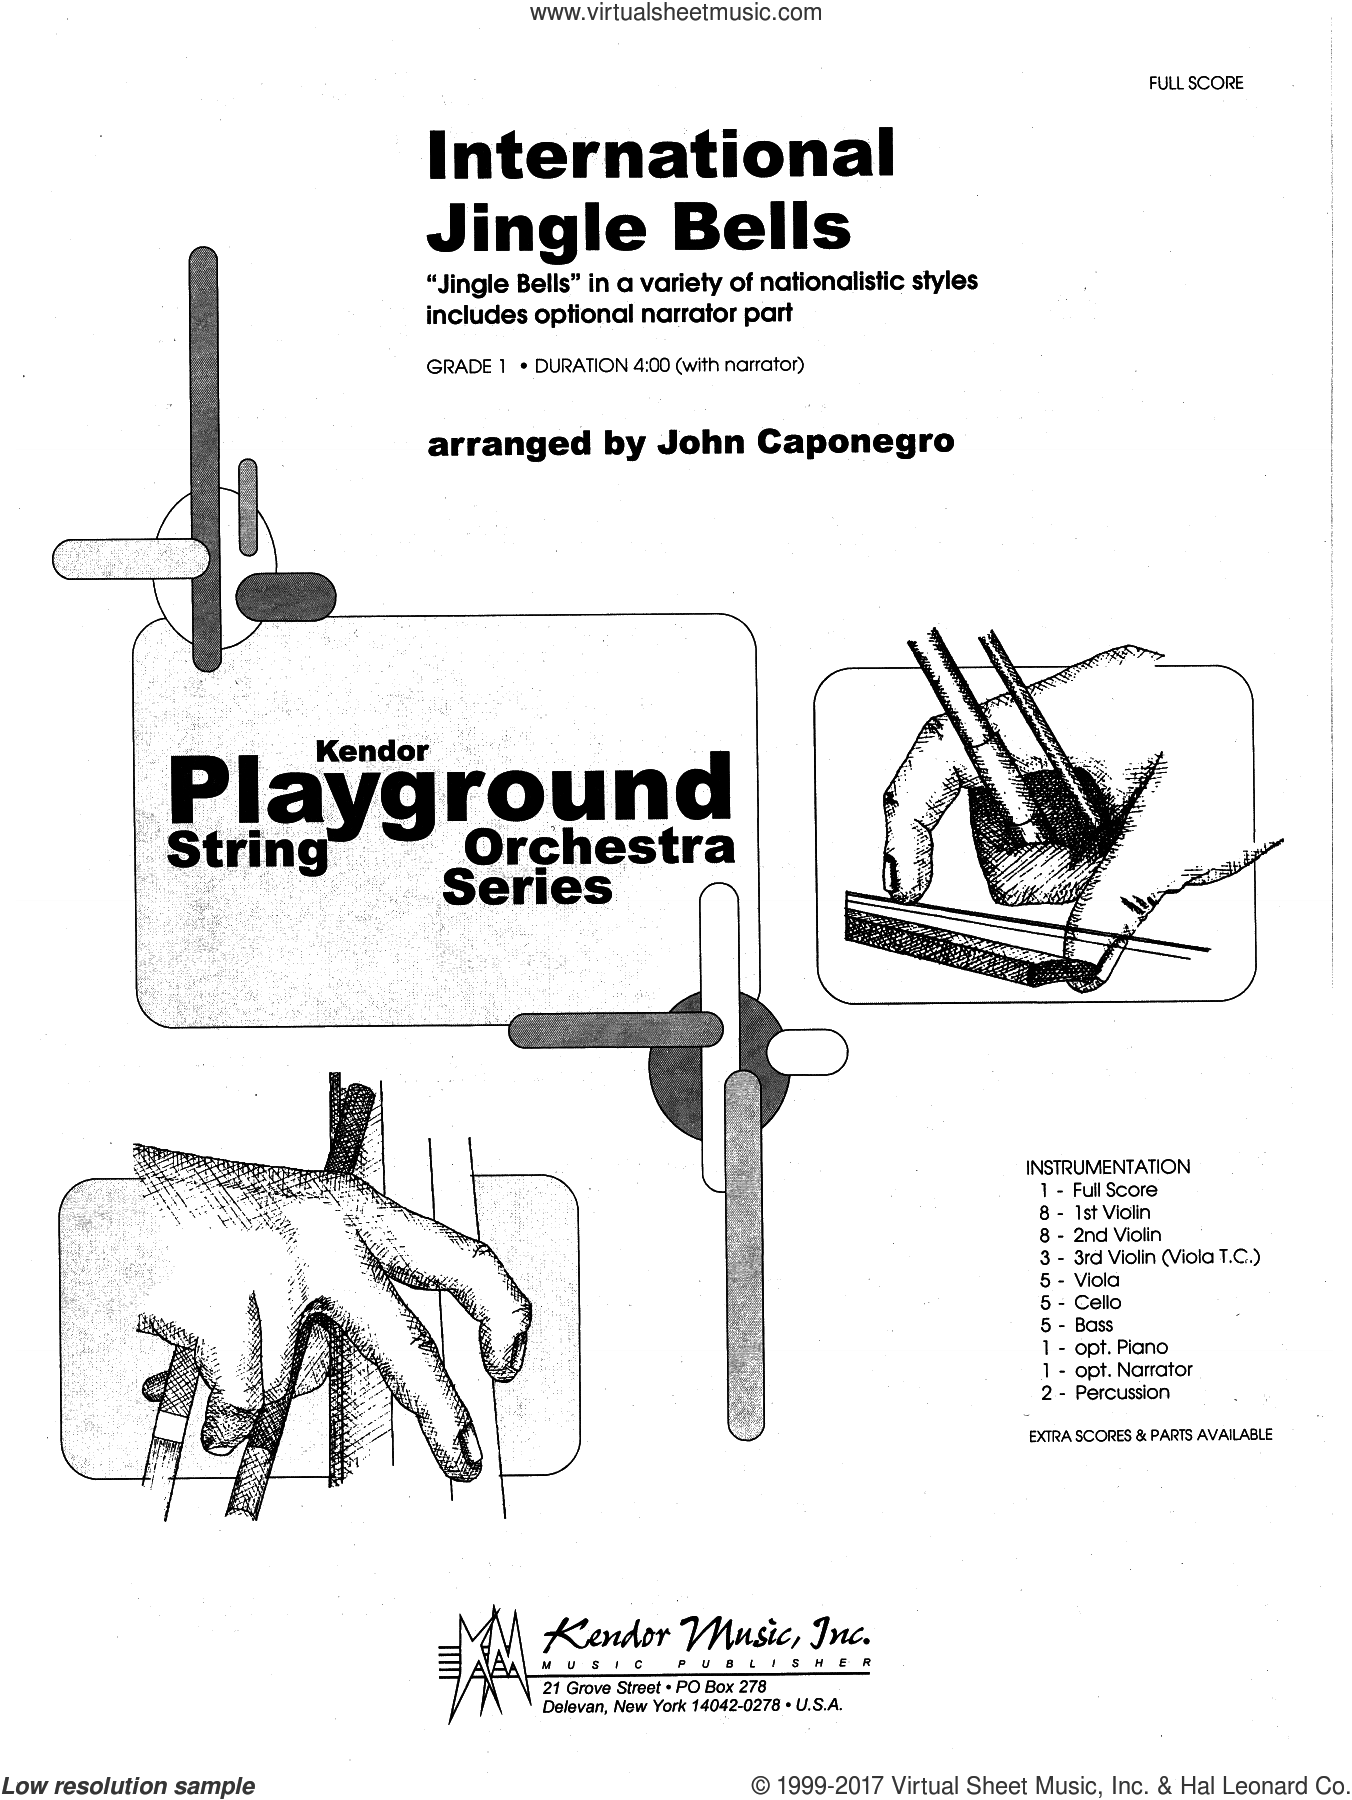 International Jingle Bells sheet music (complete collection) for orchestra